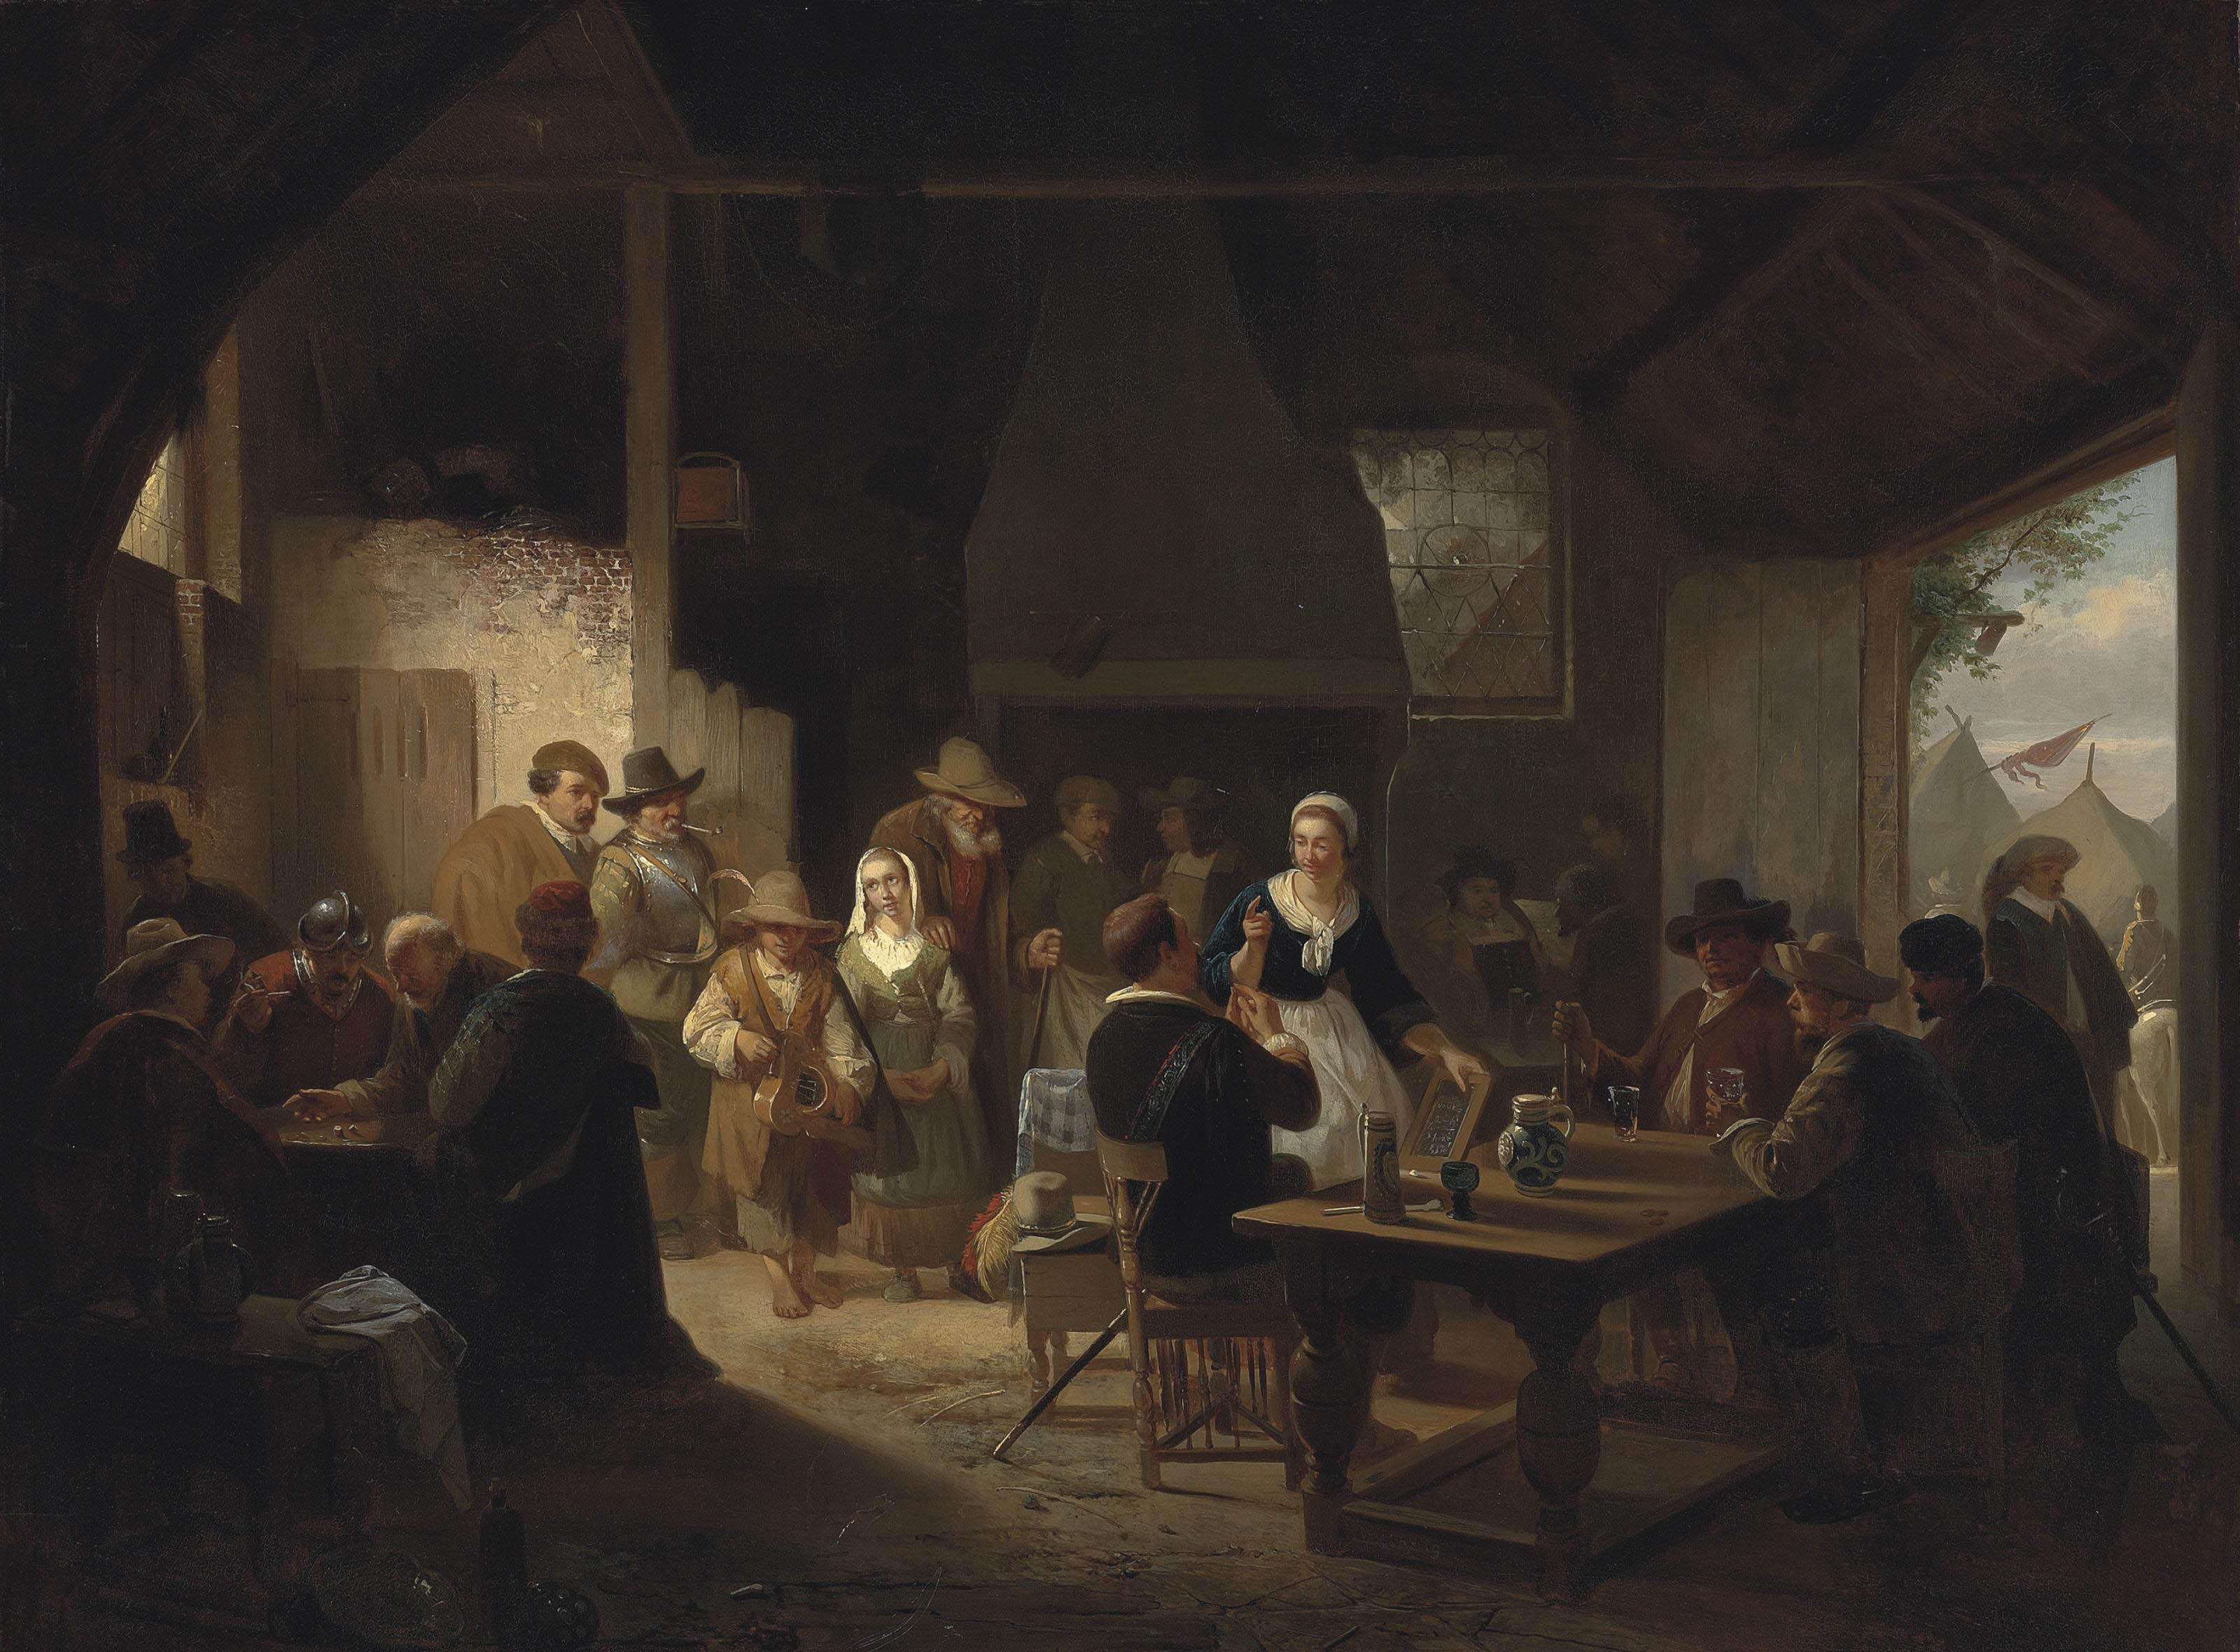 Townspeople making merry in the inn